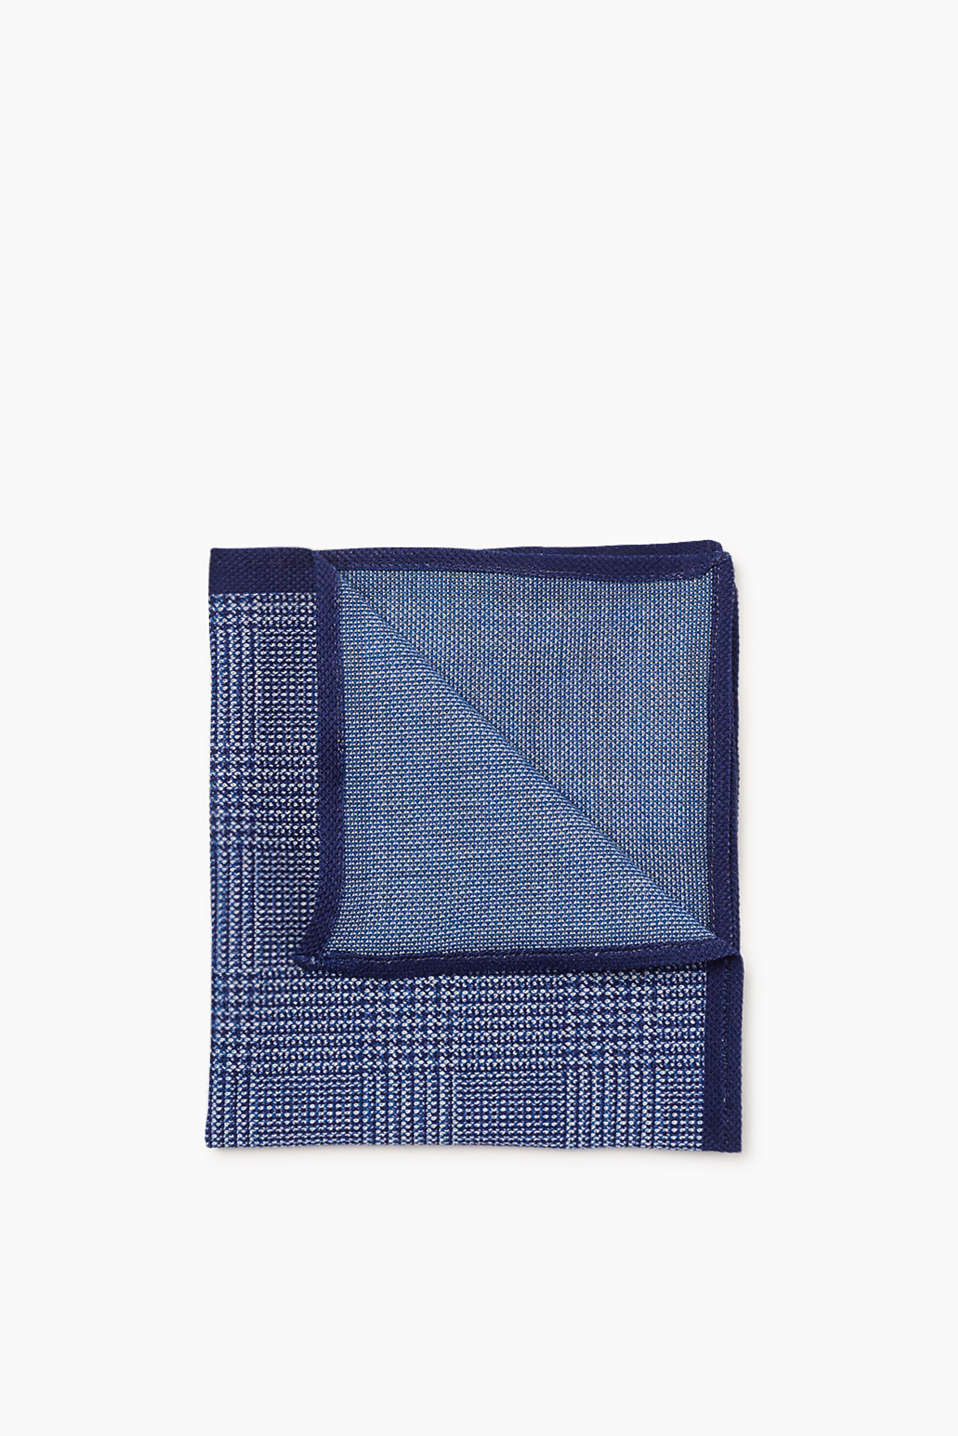 Pure cotton pocket square with a textured, glencheck pattern